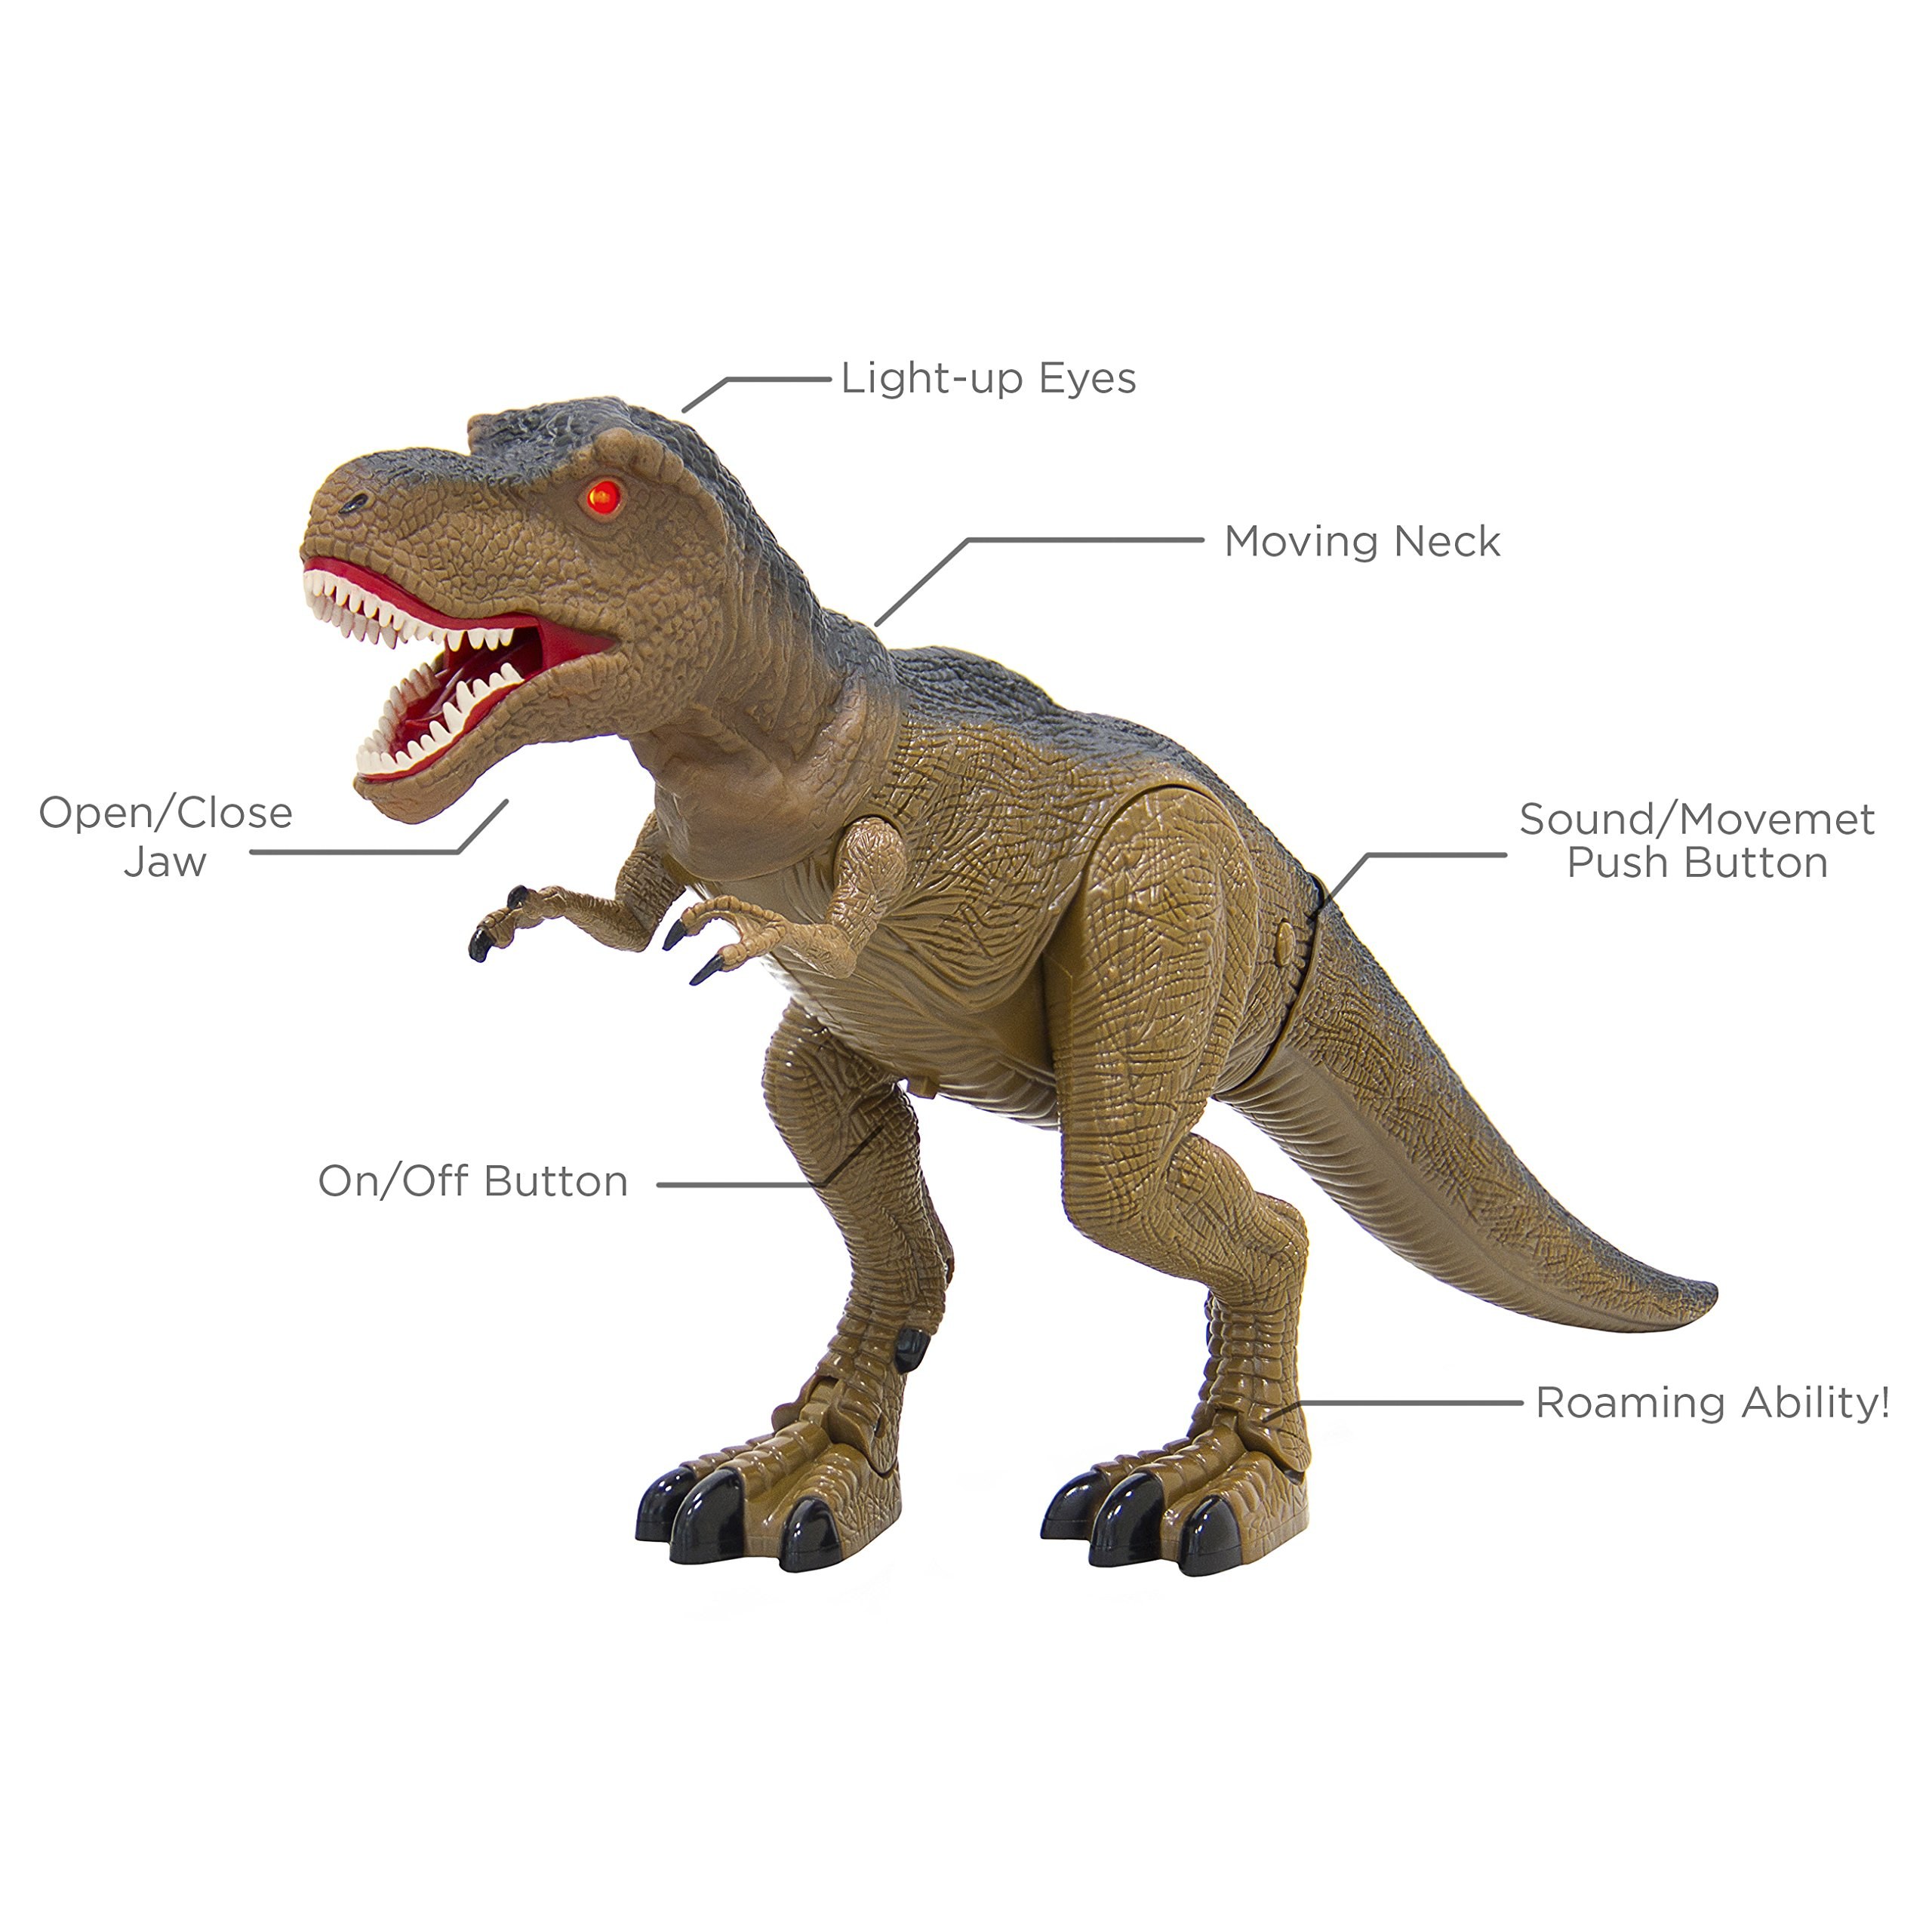 Best Choice Products 19in Kids Walking Remote Control Tyrannosaurus Rex Dinosaur RC Toy w/ Light-Up Eyes, Sounds by Best Choice Products (Image #5)